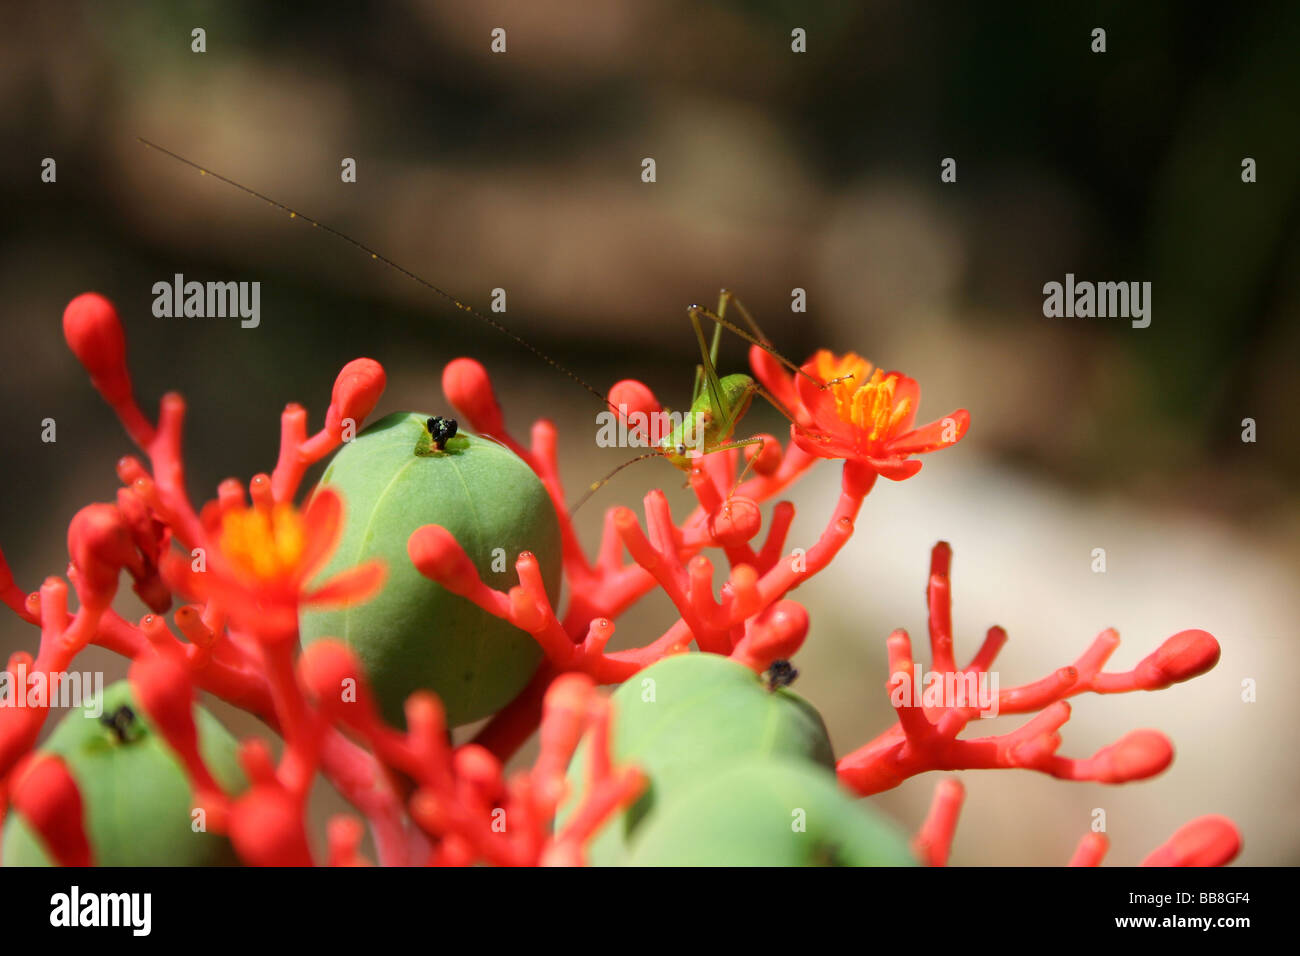 Cricket, Insect, Viet Nam - Stock Image